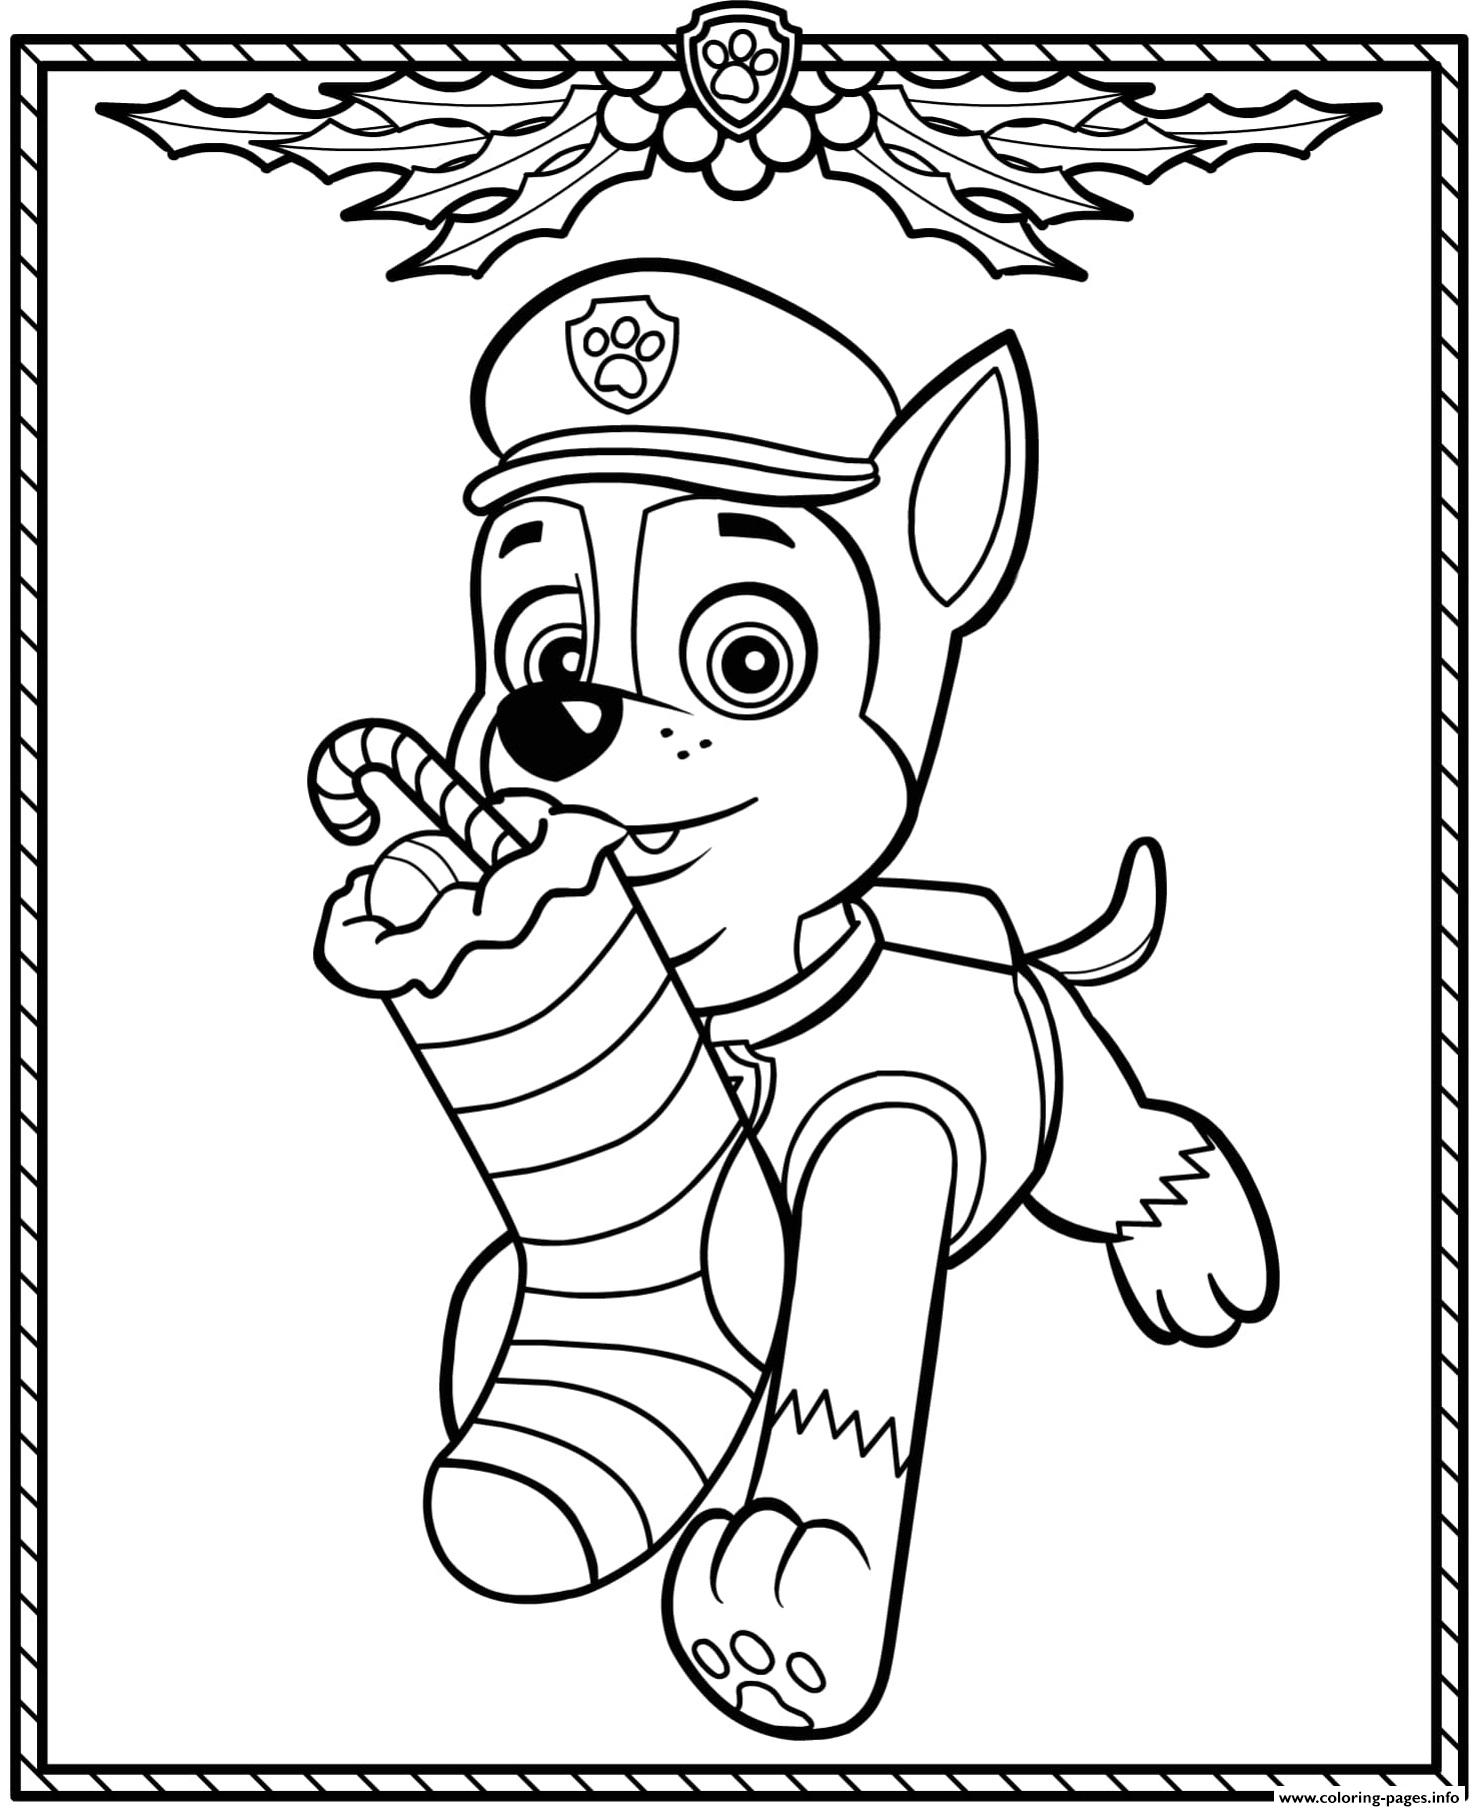 rescue dog coloring pages paw patrol holiday christmas chase coloring pages printable dog coloring rescue pages